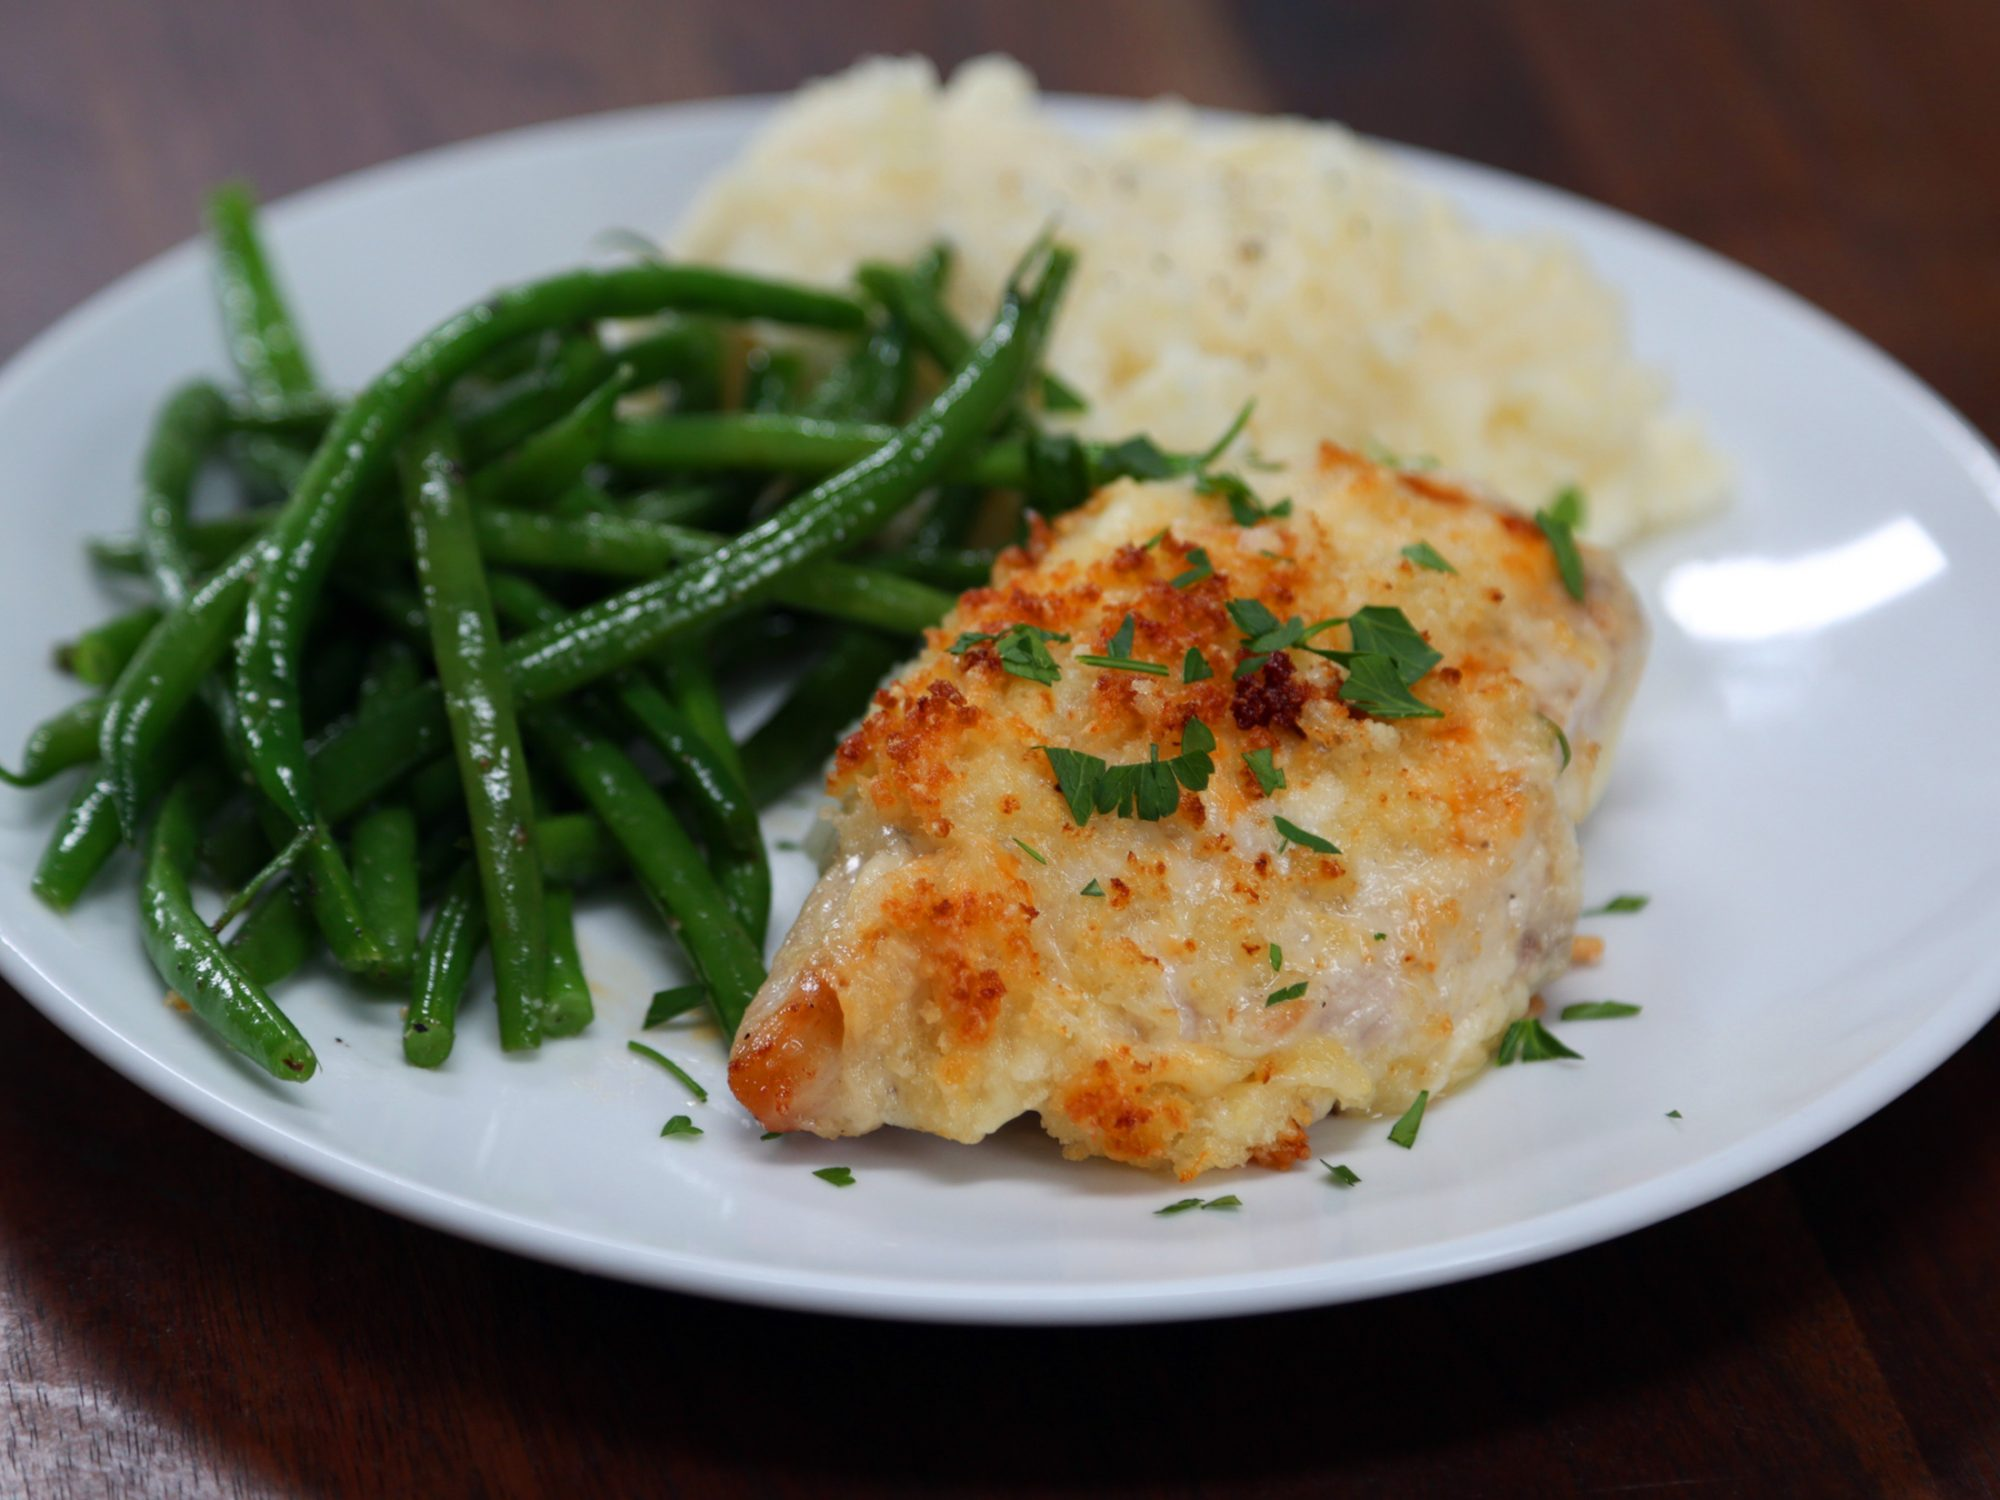 Copycat Longhorn Parmesan Crusted Chicken Recipe Myrecipes,United Airlines Baggage Policy Military